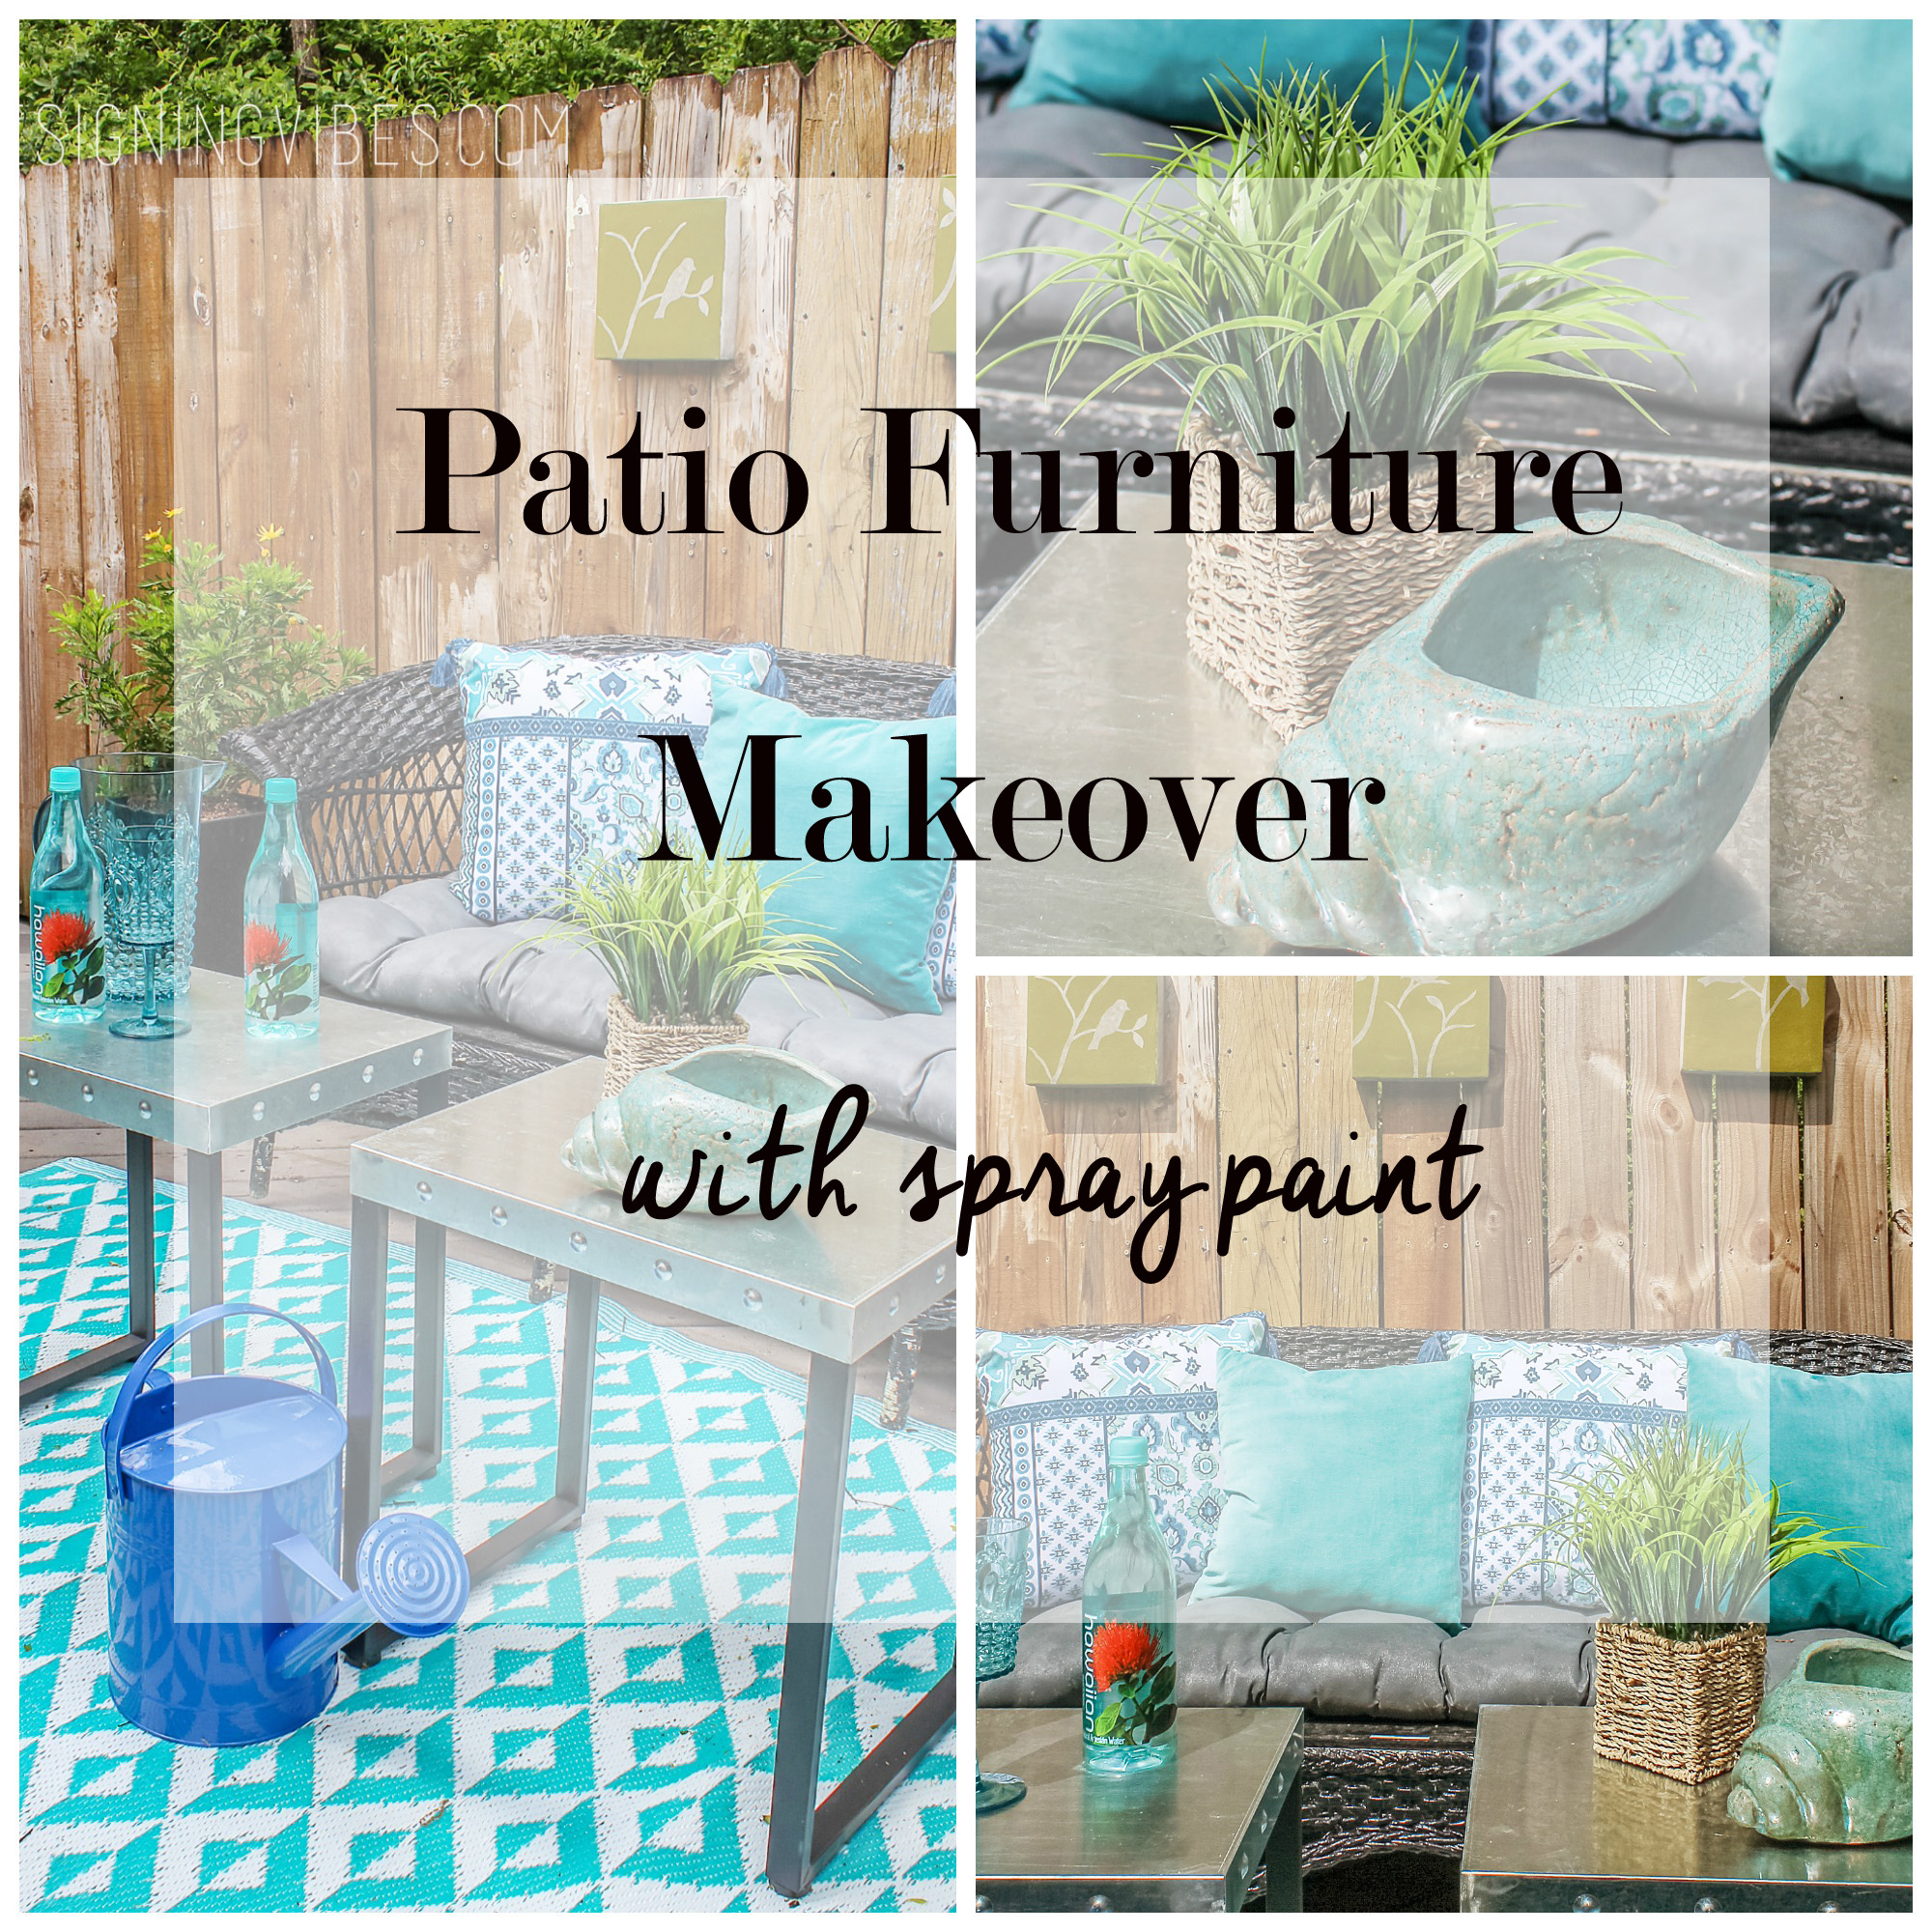 spray paint fixes everything diy patio furniture makeover. Black Bedroom Furniture Sets. Home Design Ideas